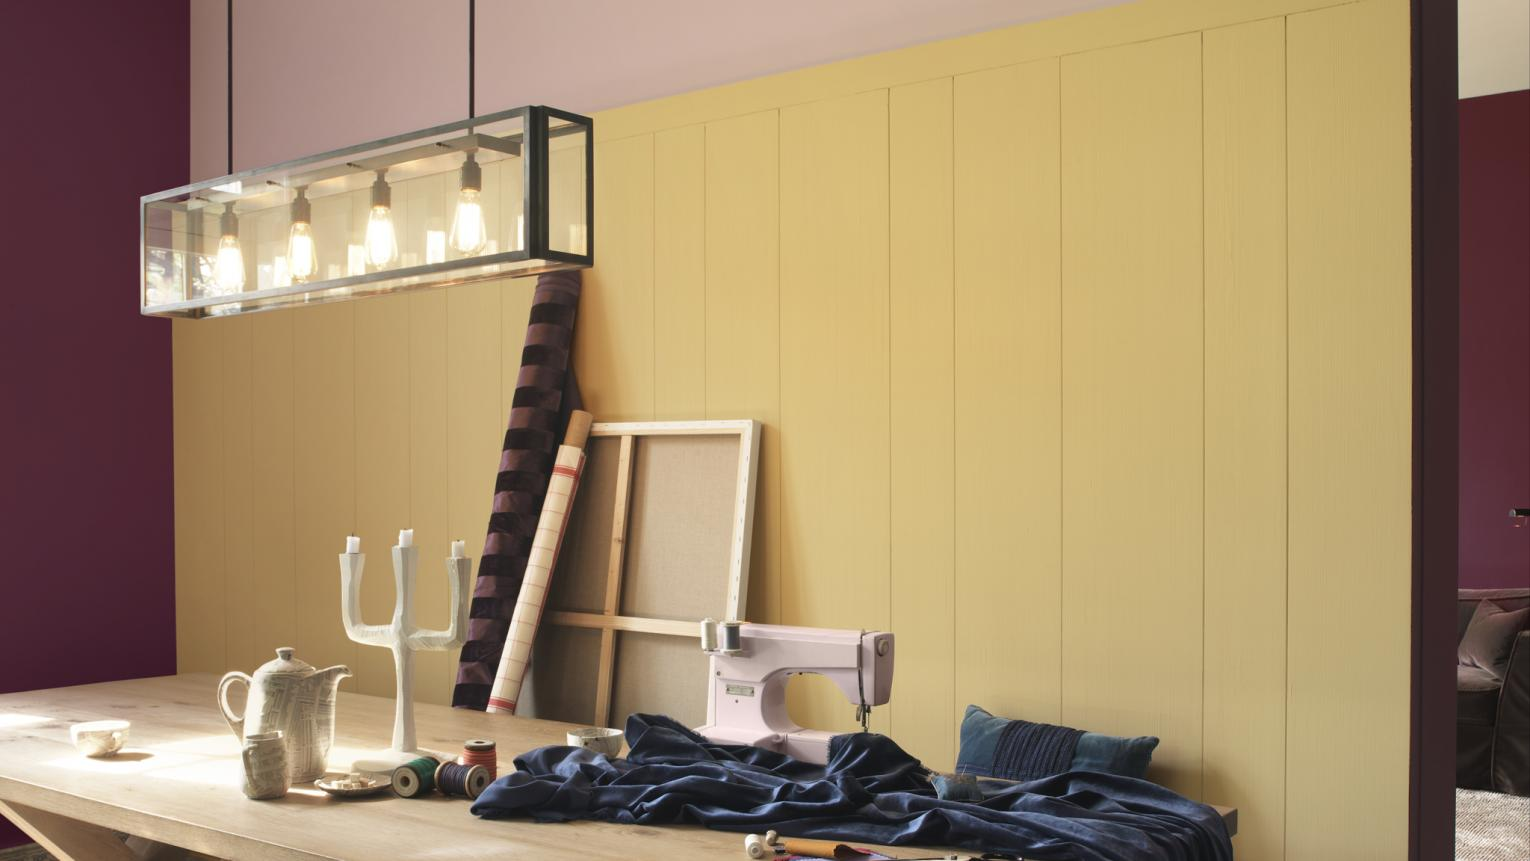 Use rich pinks to add creative passion to a wall of yellow.